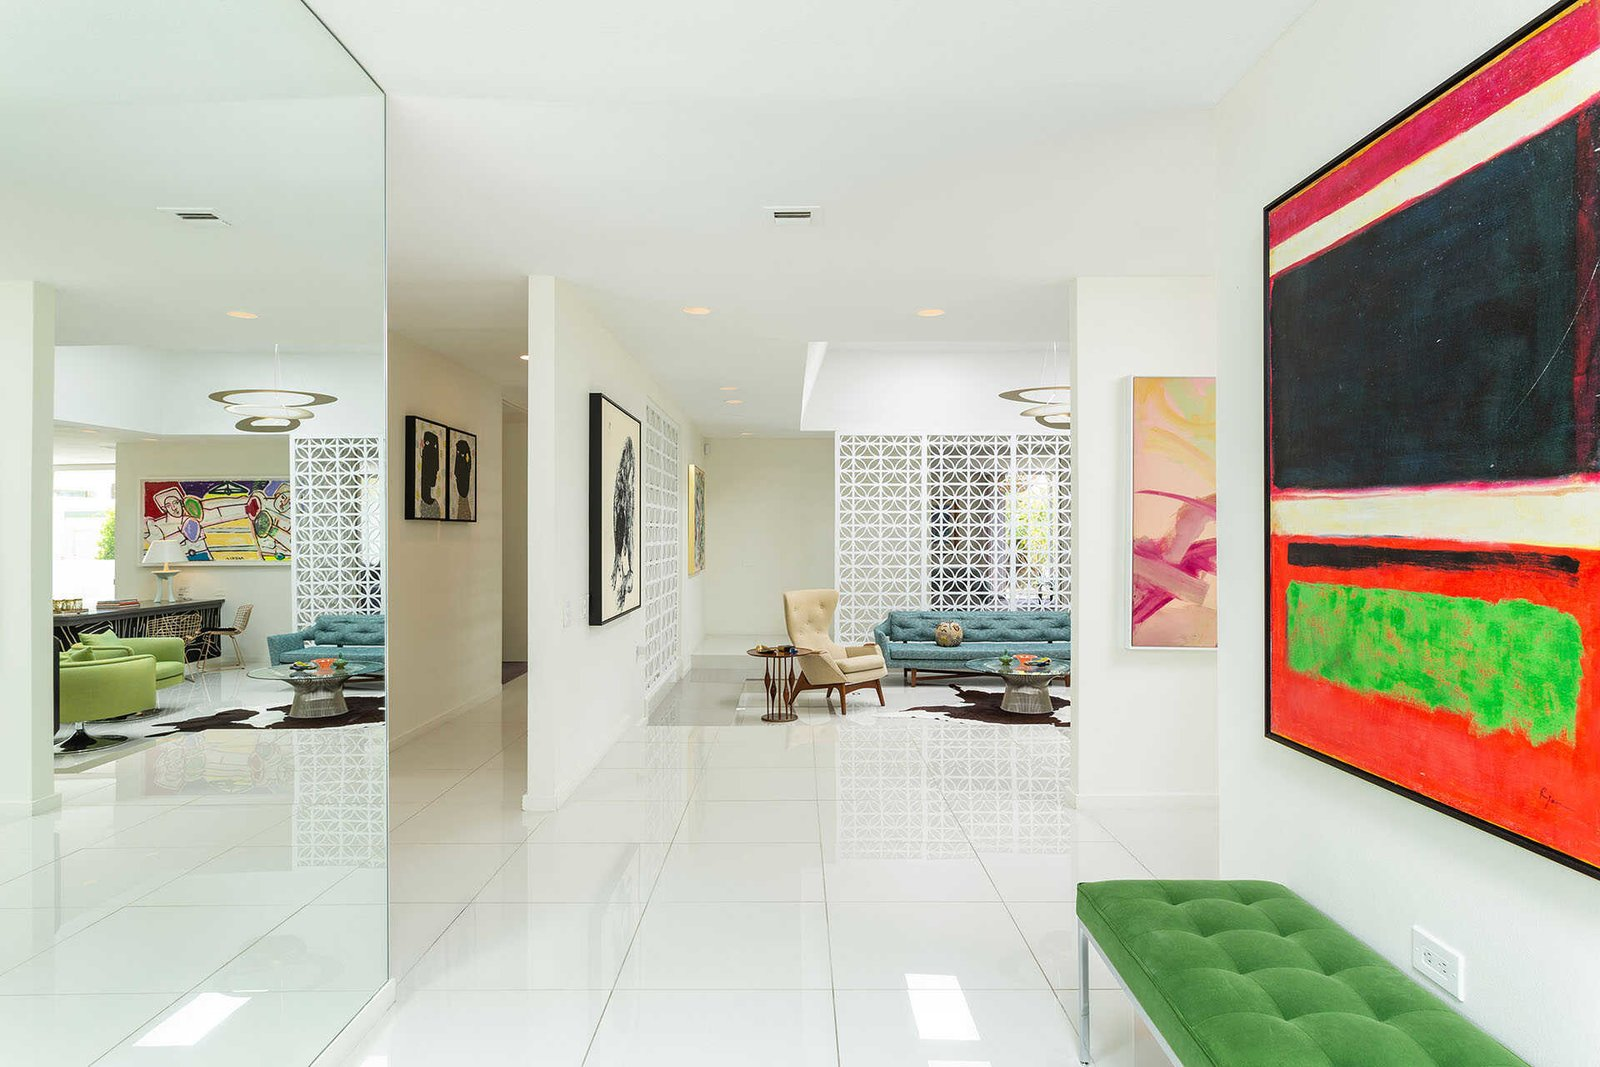 Designed for entertaining, the 3,848-square-foot residence offers an open floor plan with spacious living areas. White terrazzo floors complement the neutral palette while bright artwork infuses vibrant color throughout.  Photo 3 of 13 in A Sassy, Pink-Trimmed Ranch Near Palm Springs Lists for $899K